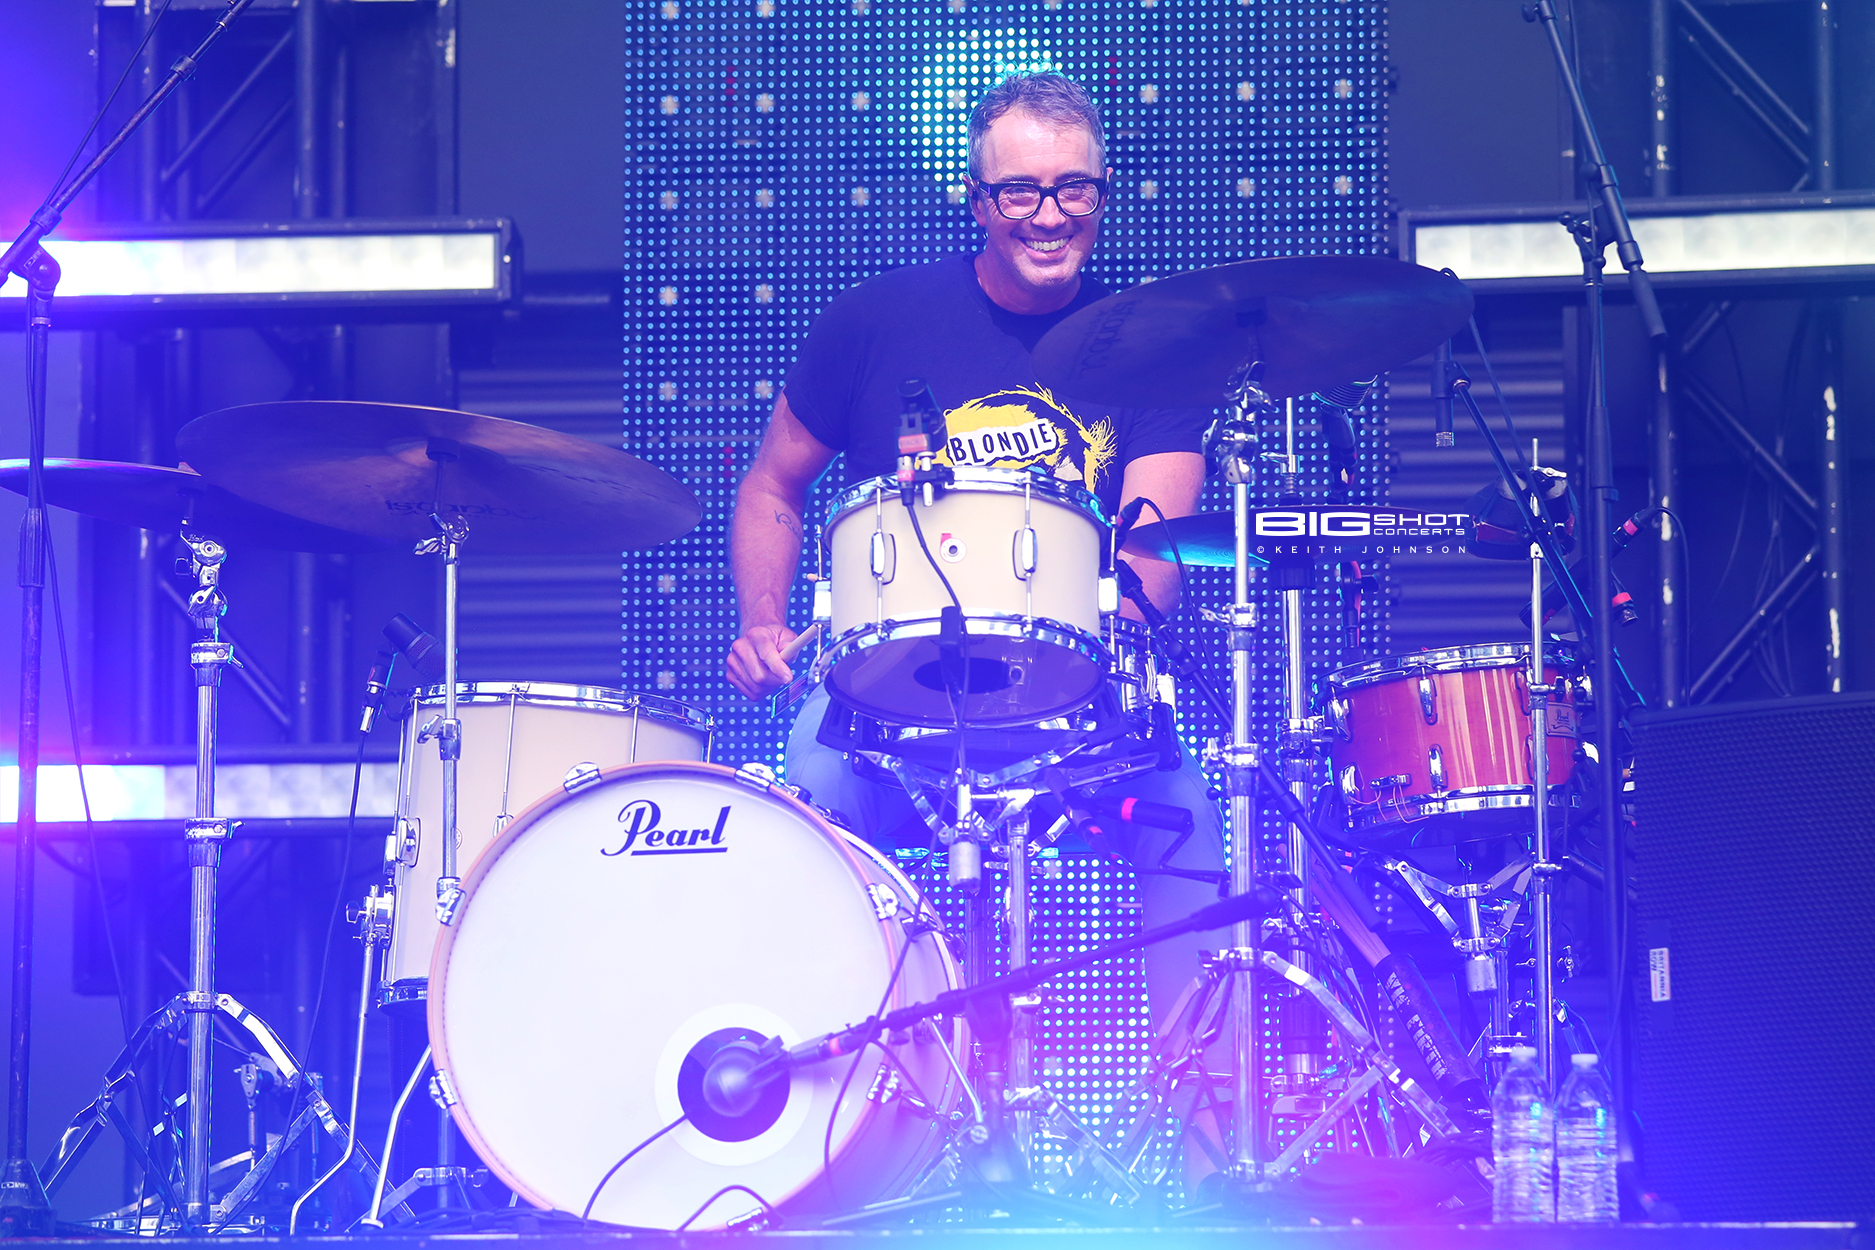 Drummer - Fitz & the Tantrums